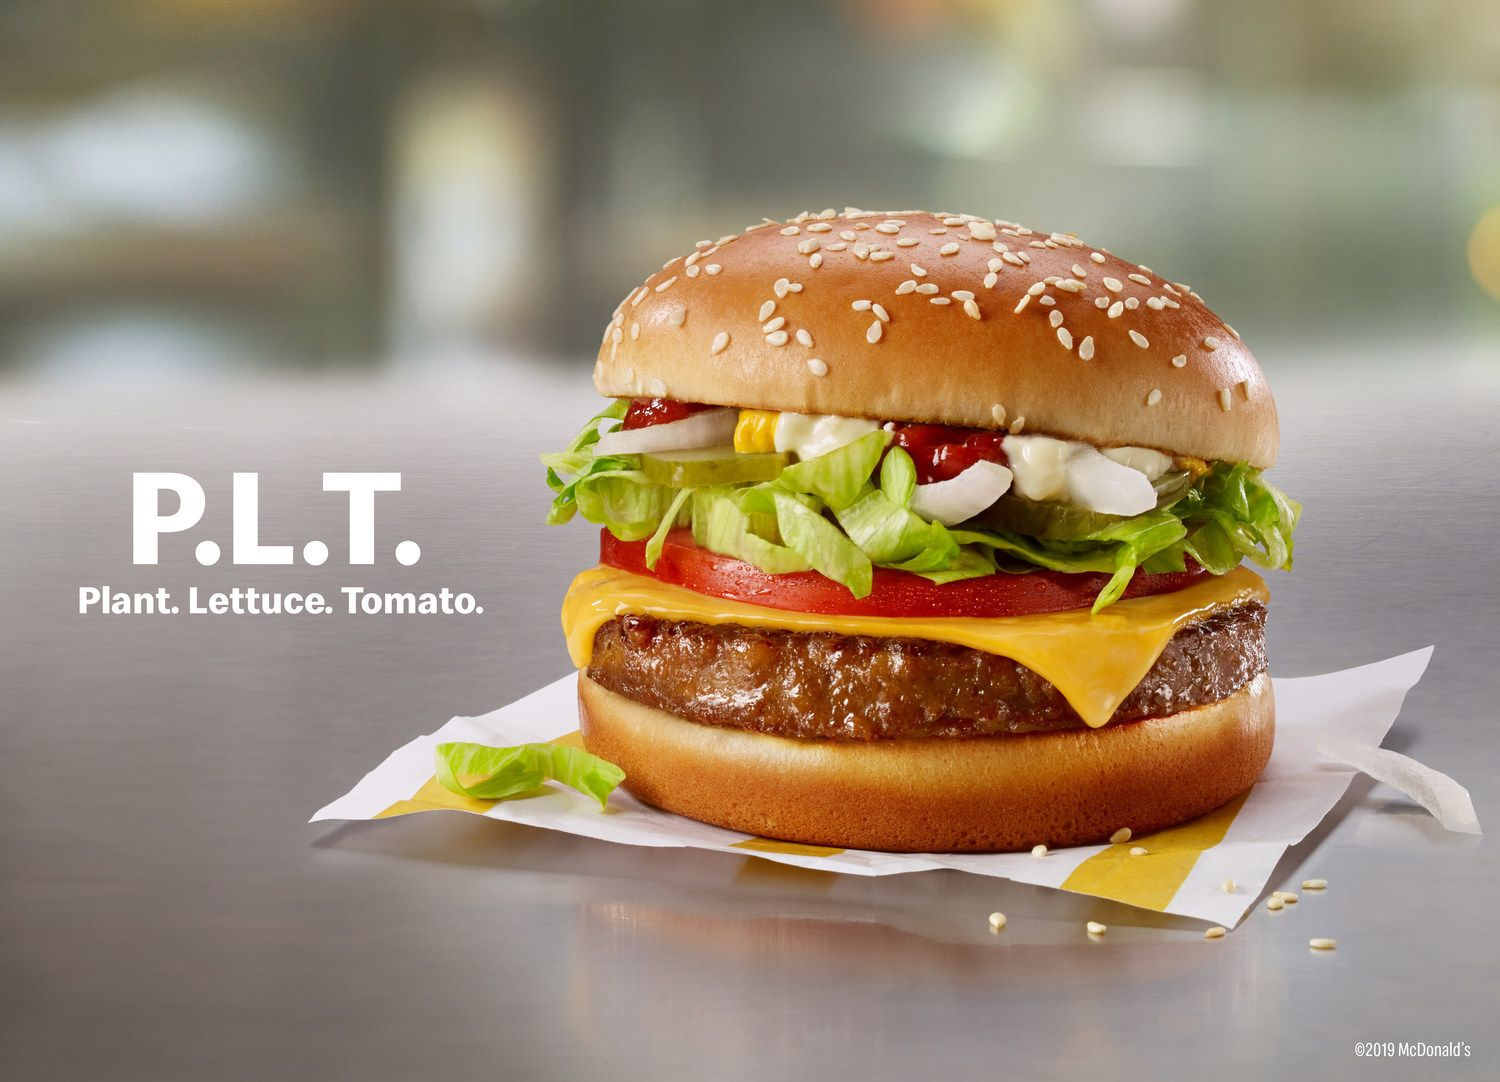 McDonald's Tests New Plant-Based Burger in Canada